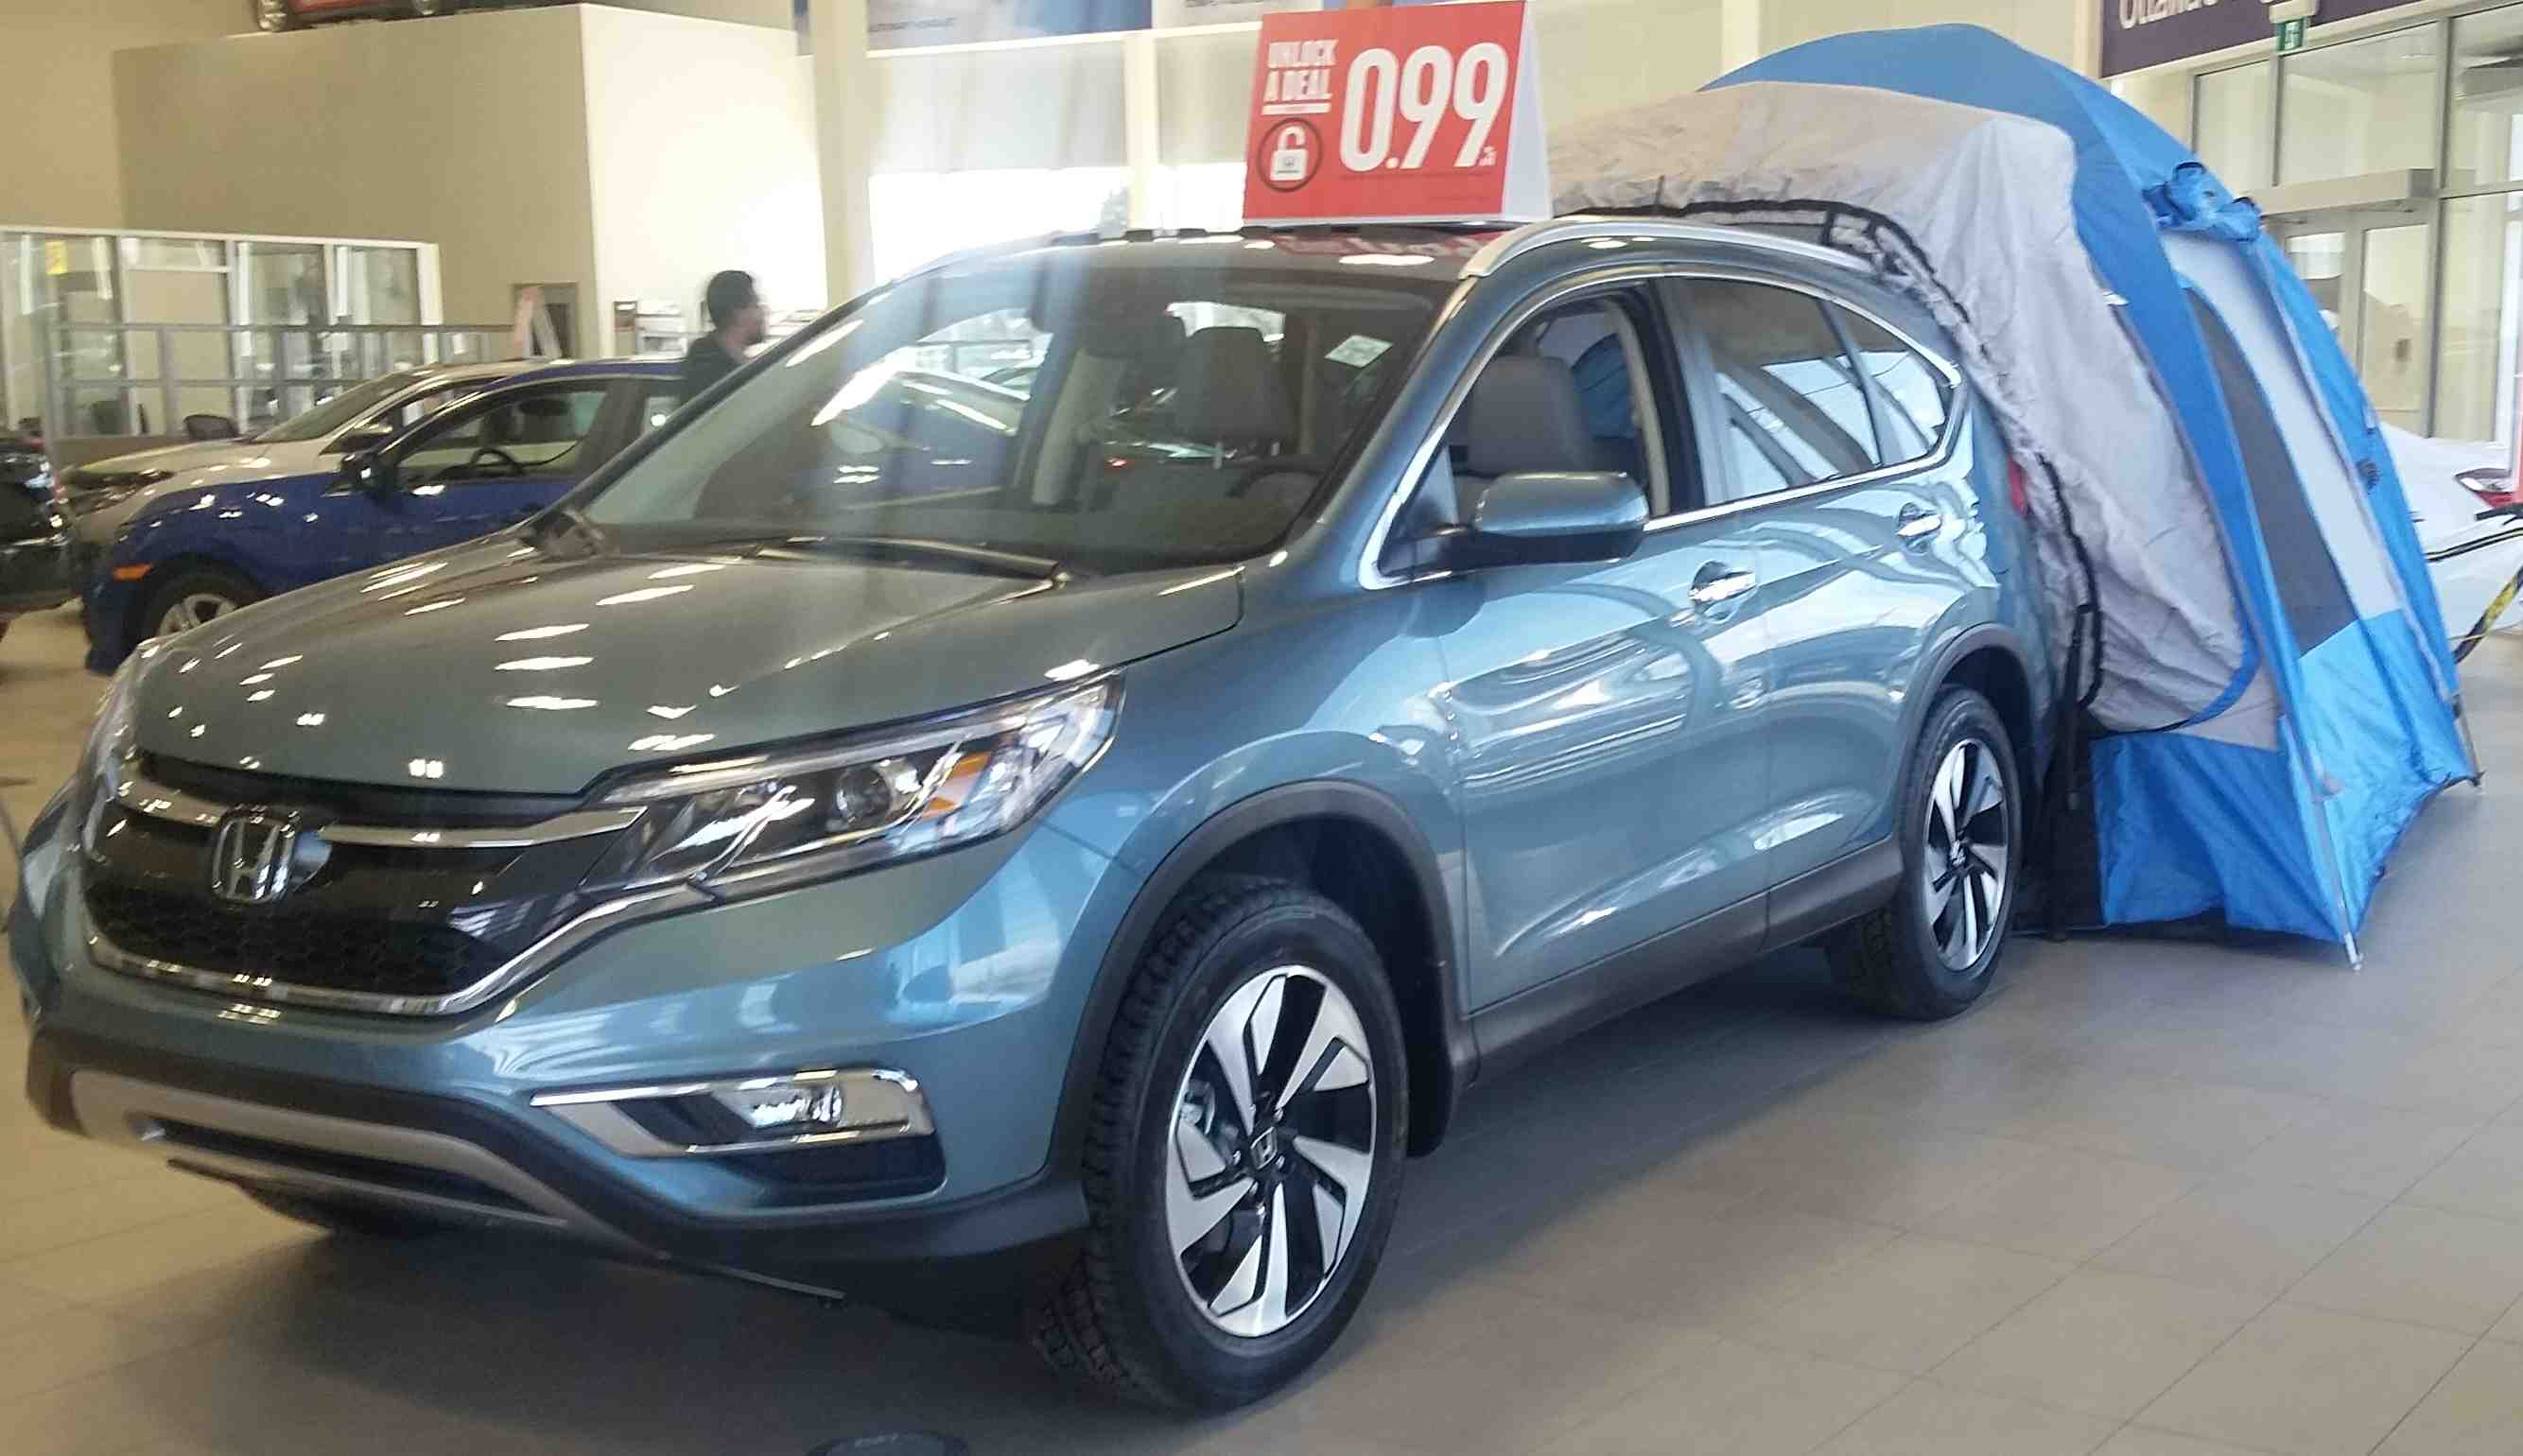 If youu0027re planning a summer road trip then you will want to visit the Dow Honda showroom to check out this tent accessory for the 2016 CR-V! & Showroom Showoff: Tent Edition - Dow Honda